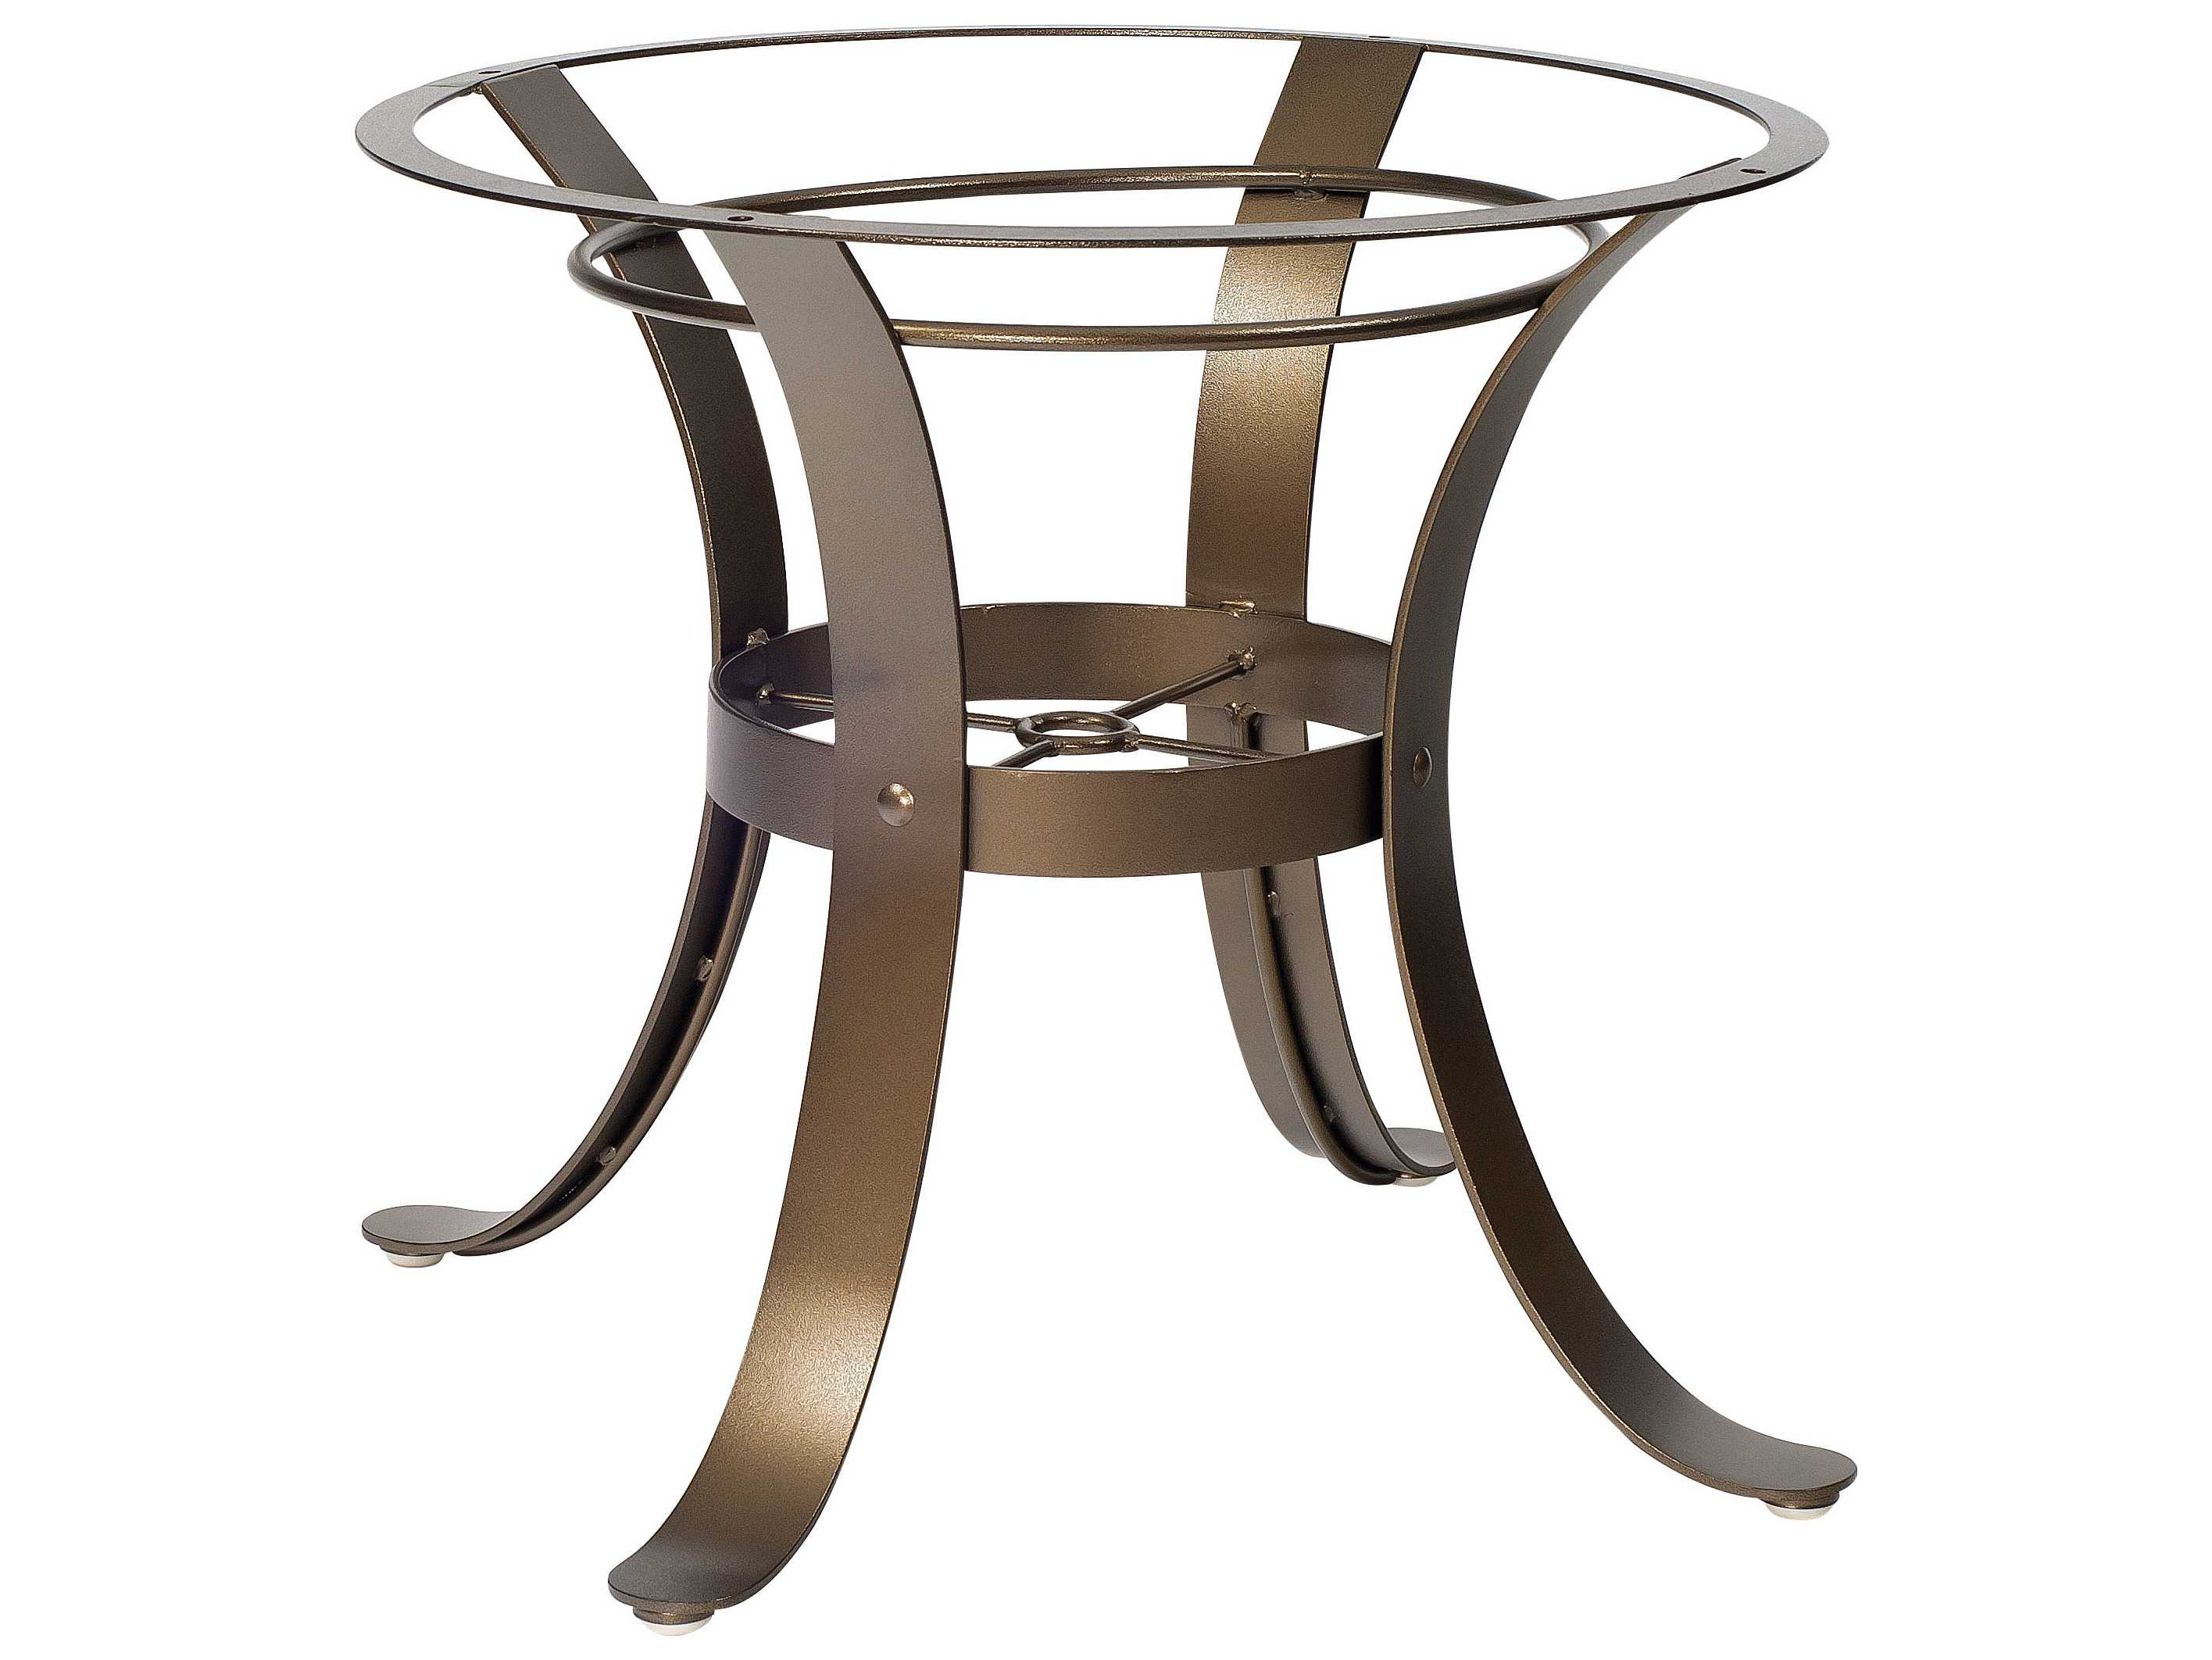 patio dining table bases photo - 8